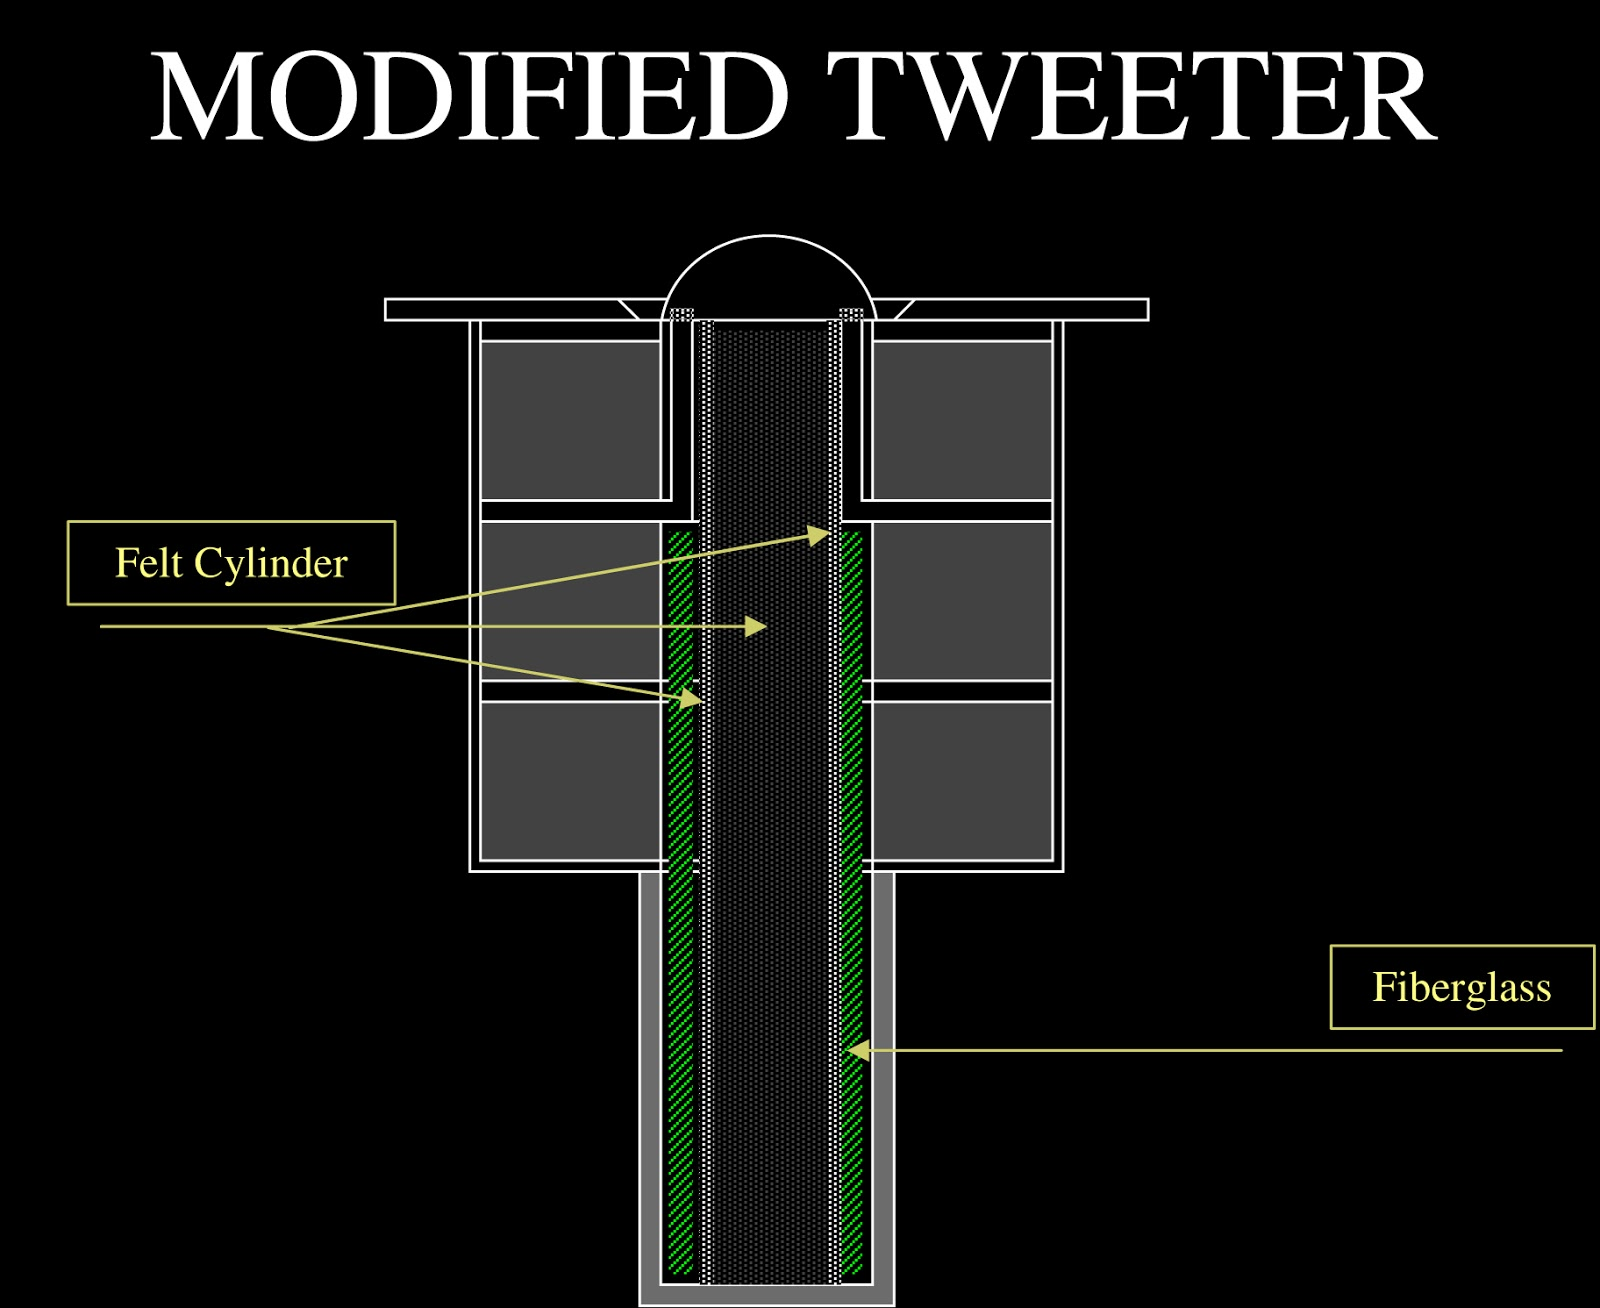 illustration of the cut-off of a tweeter after enclosure modifications